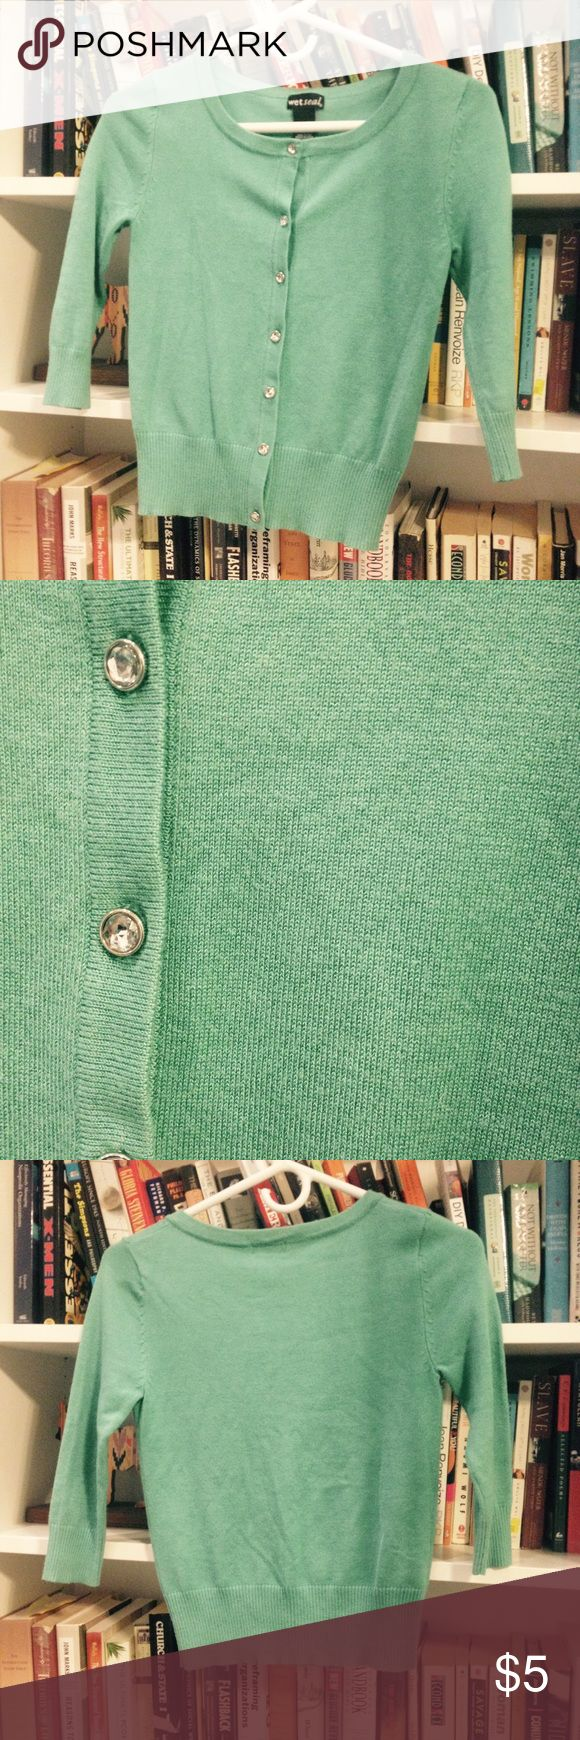 Wet Seal teal cardigan Wet Seal teal cardigan Wet Seal Sweaters Cardigans